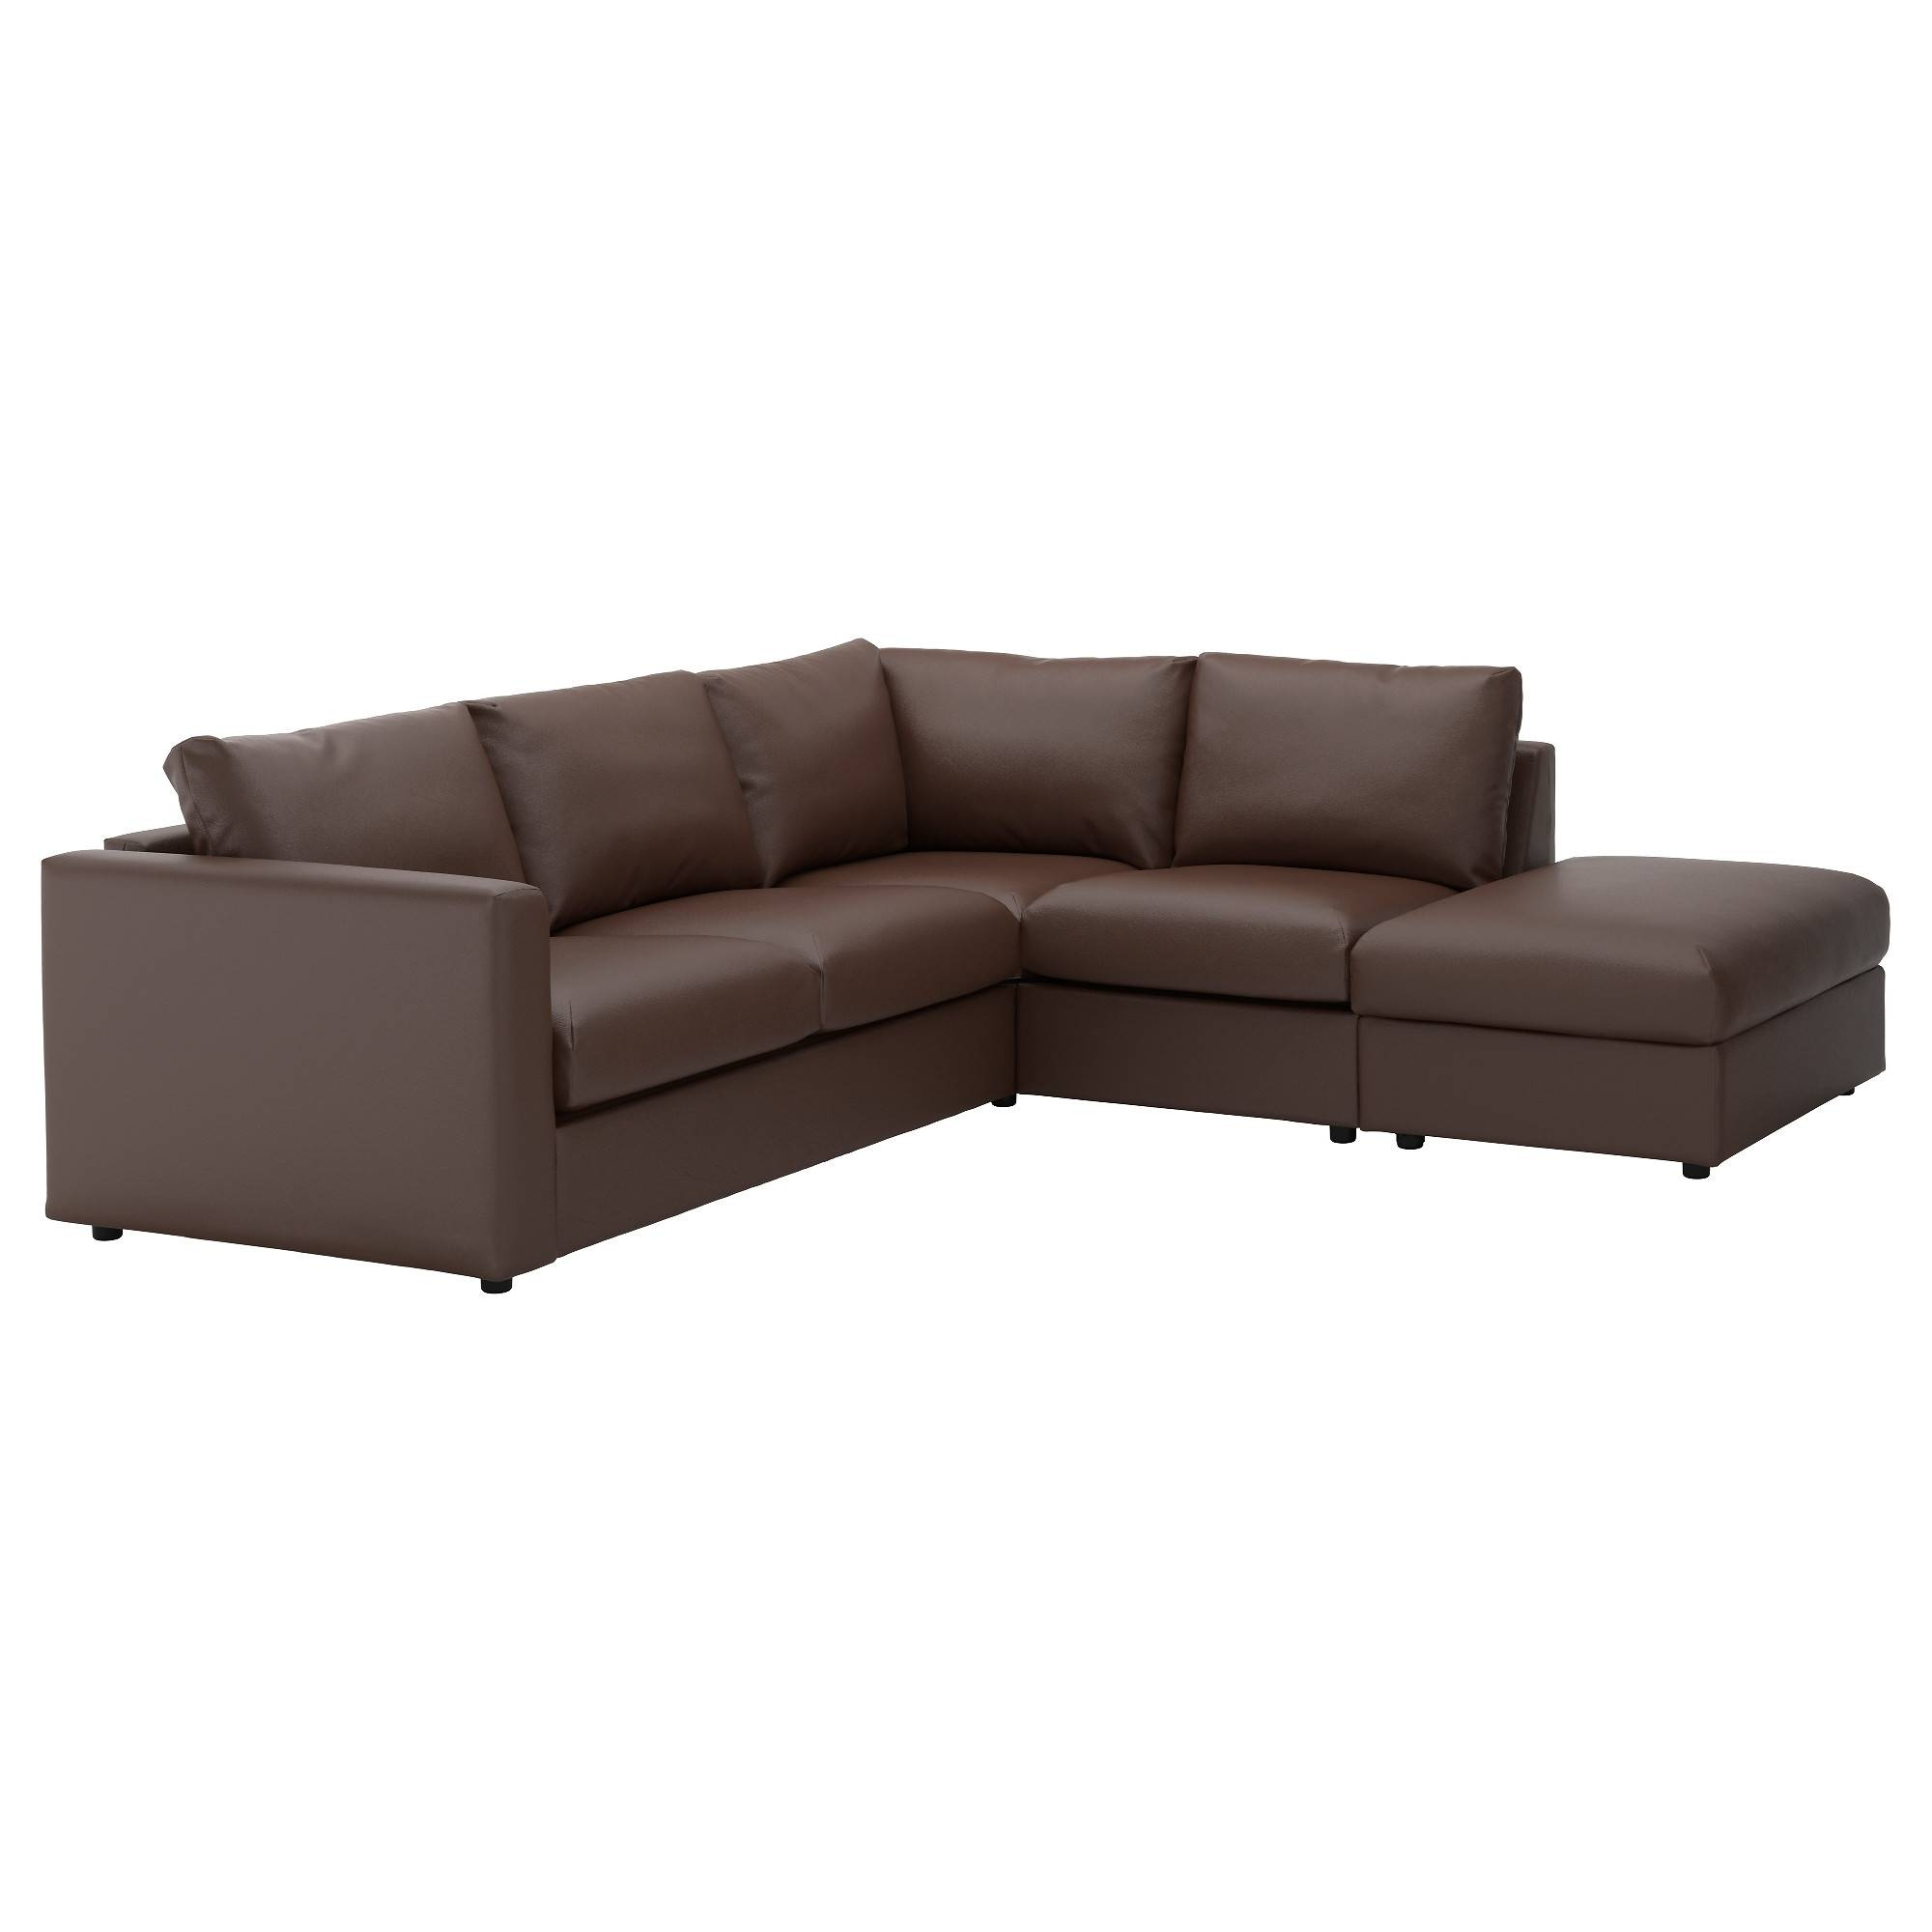 Leather & Faux Leather Couches, Chairs & Ottomans - Ikea in Sleek Sectional Sofa (Image 12 of 25)